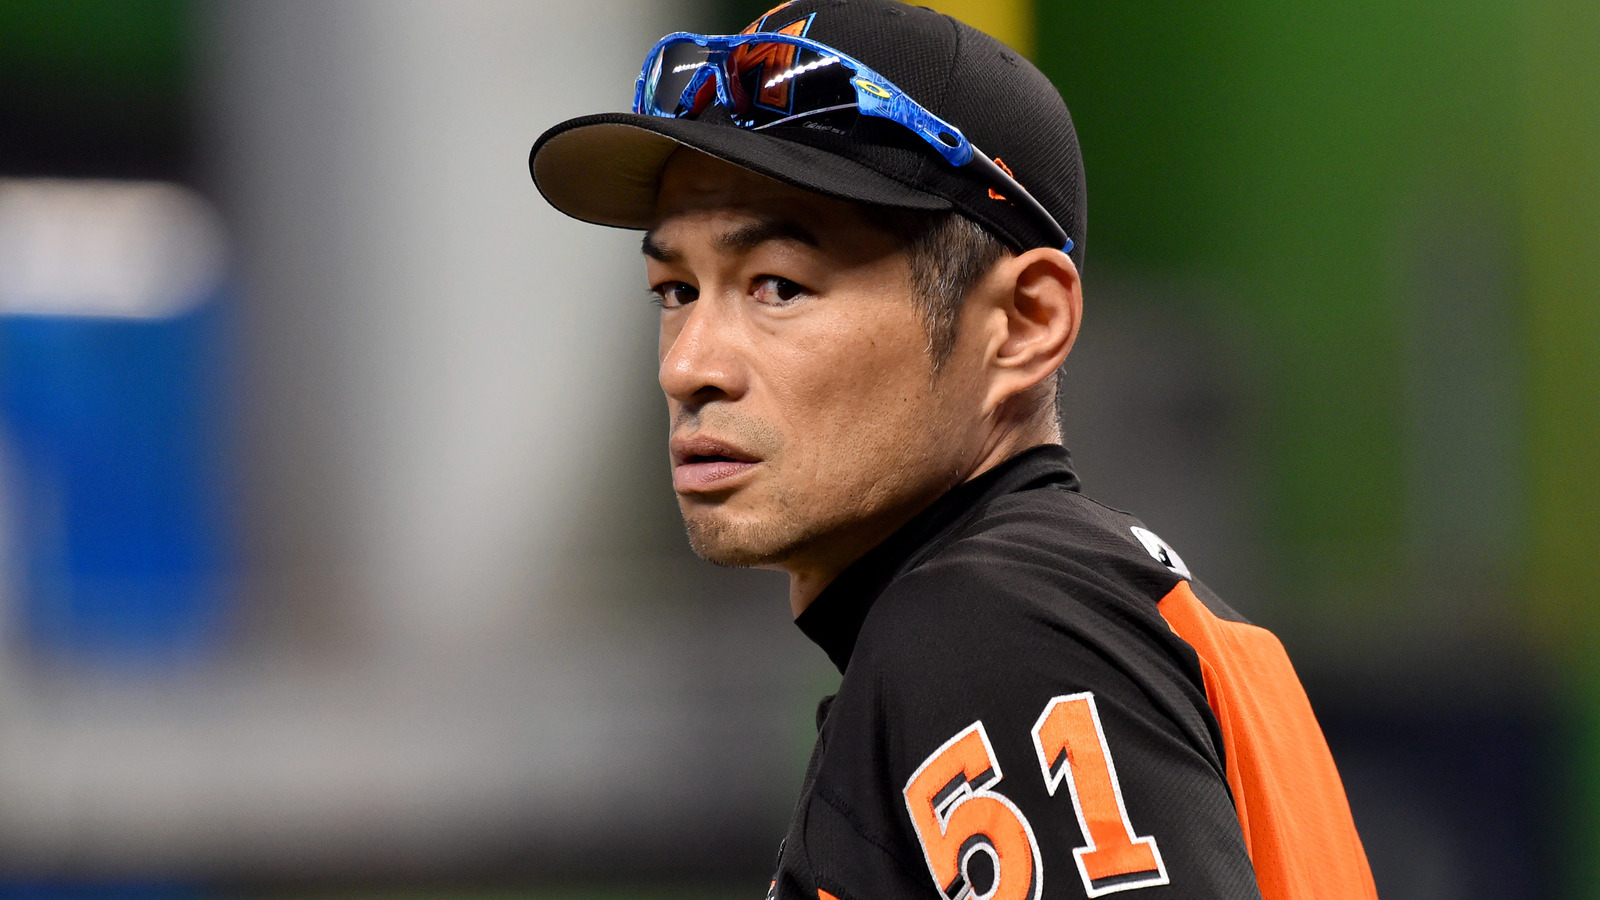 Ichiro Suzuki likely to return to Seattle Mariners